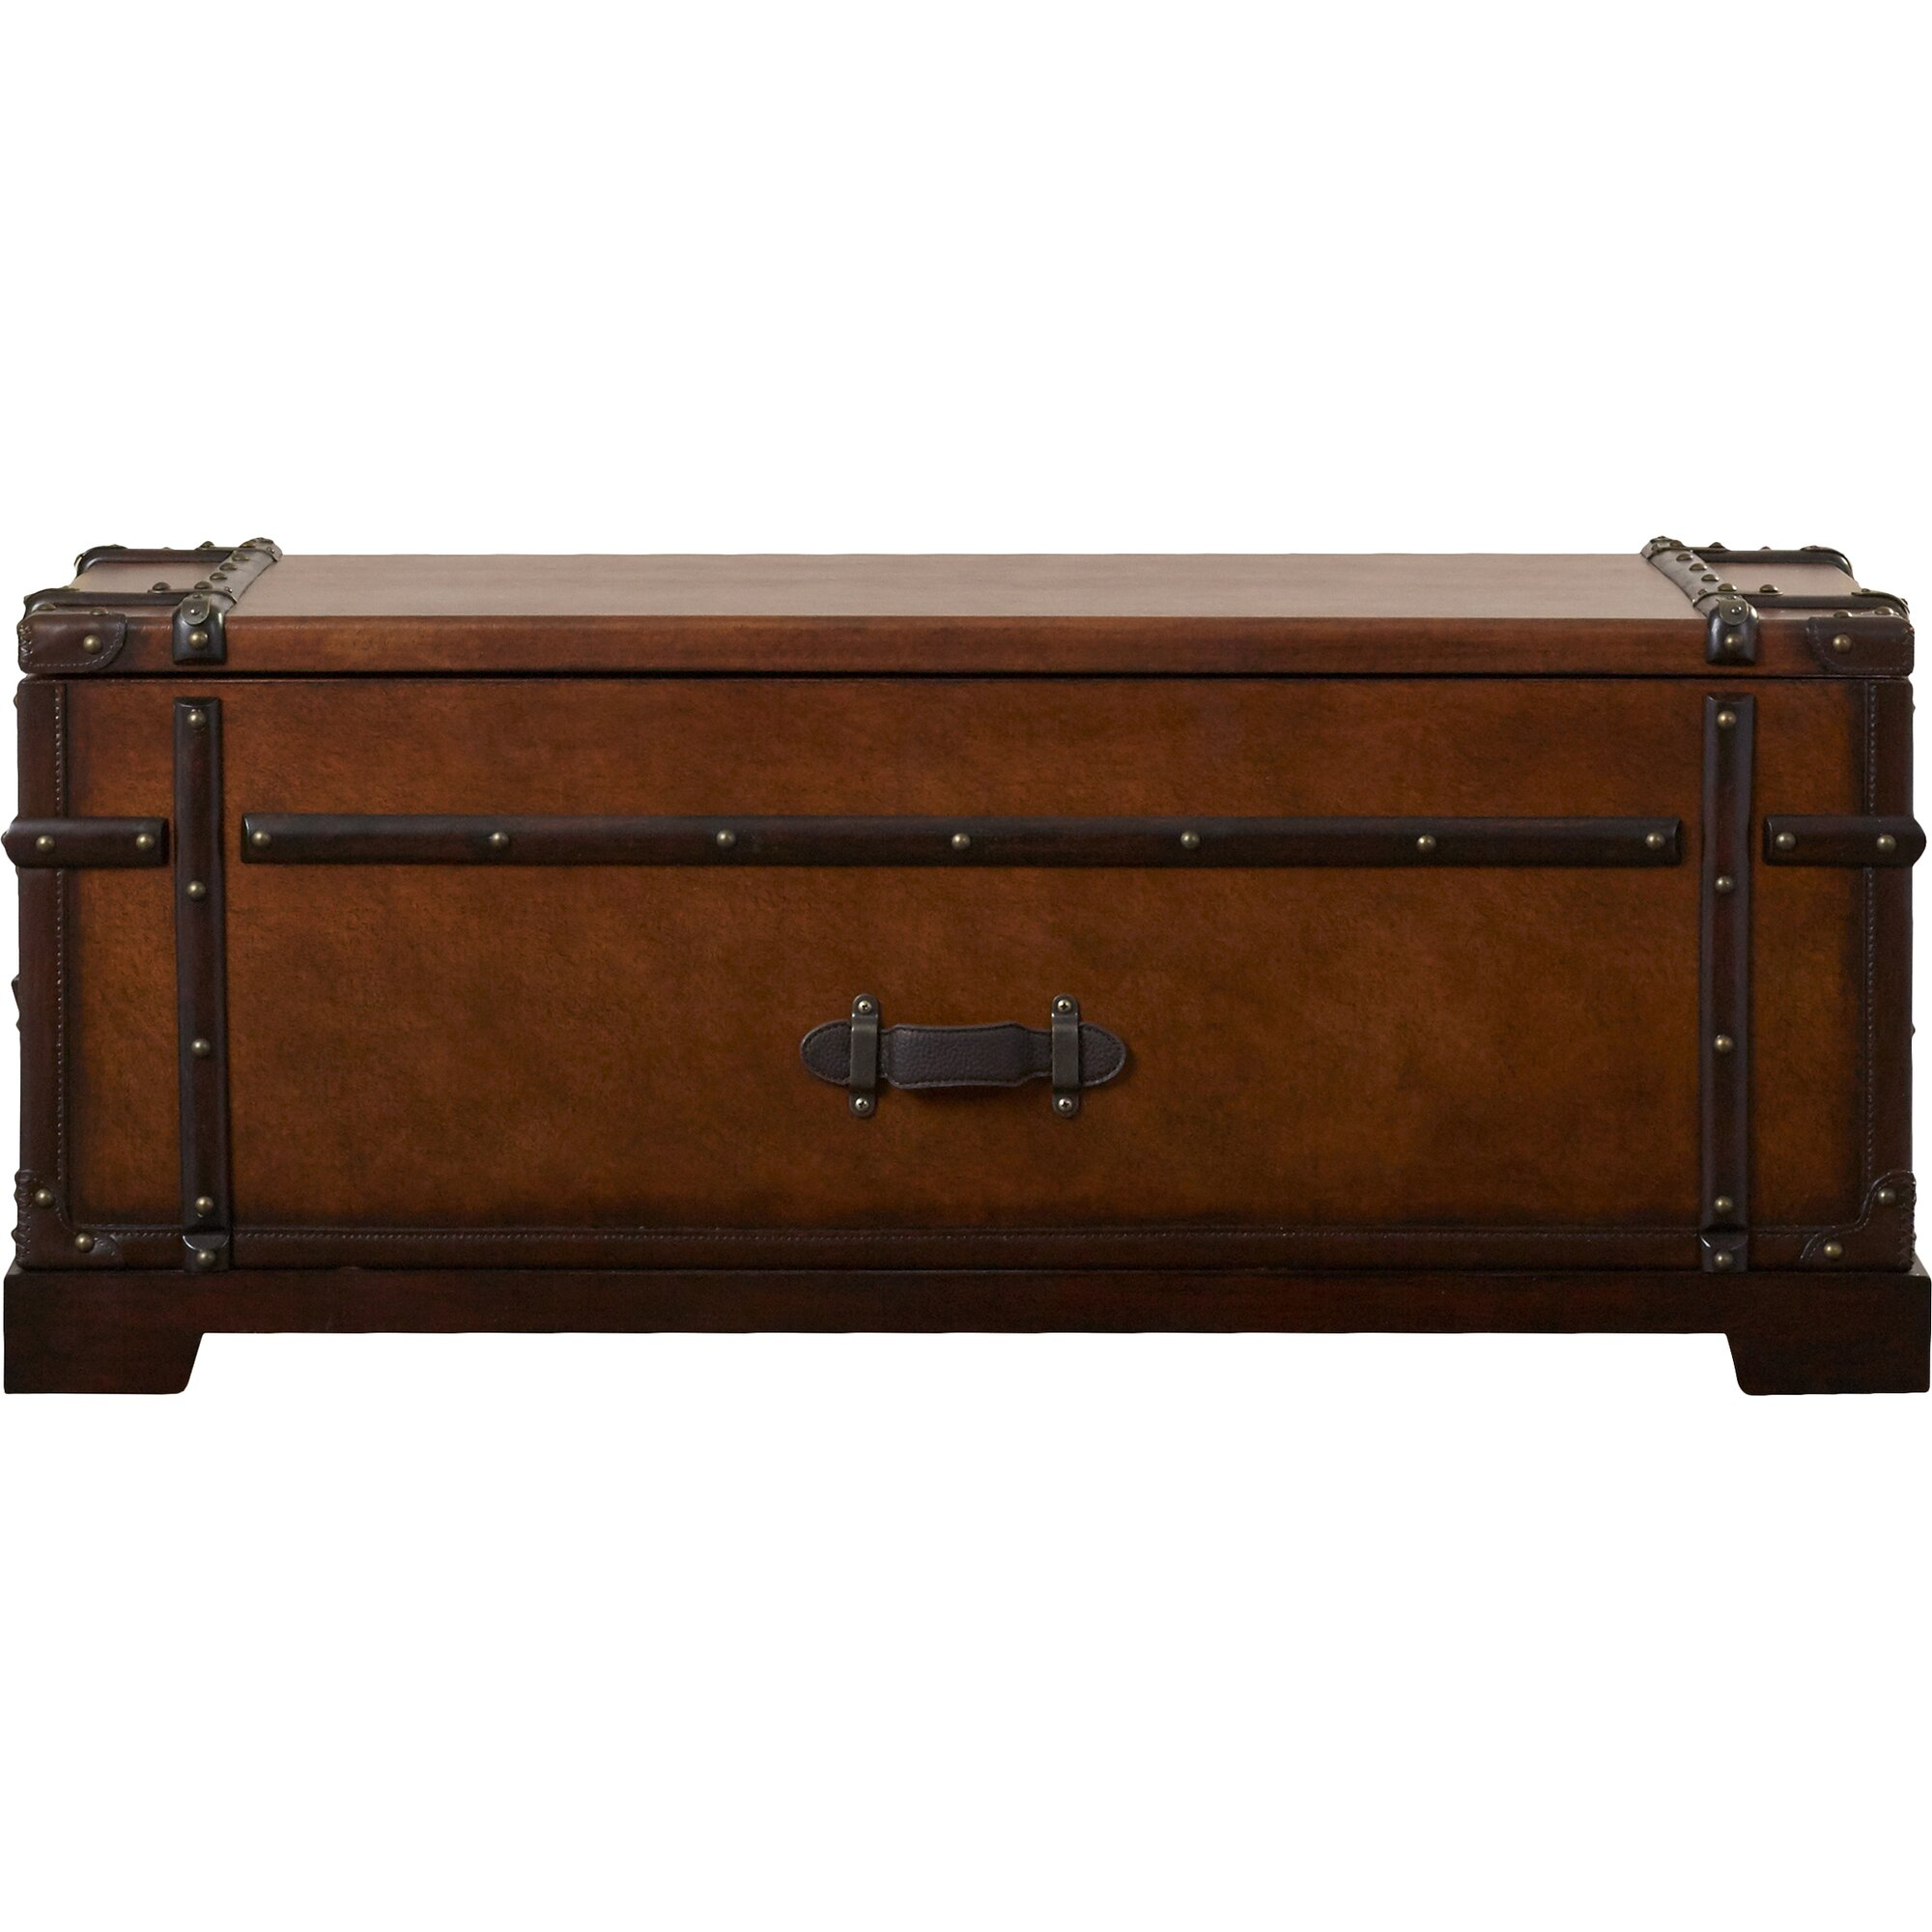 Darby Home Co Lofton Steamer Coffee Table Trunk With Lift Top Reviews